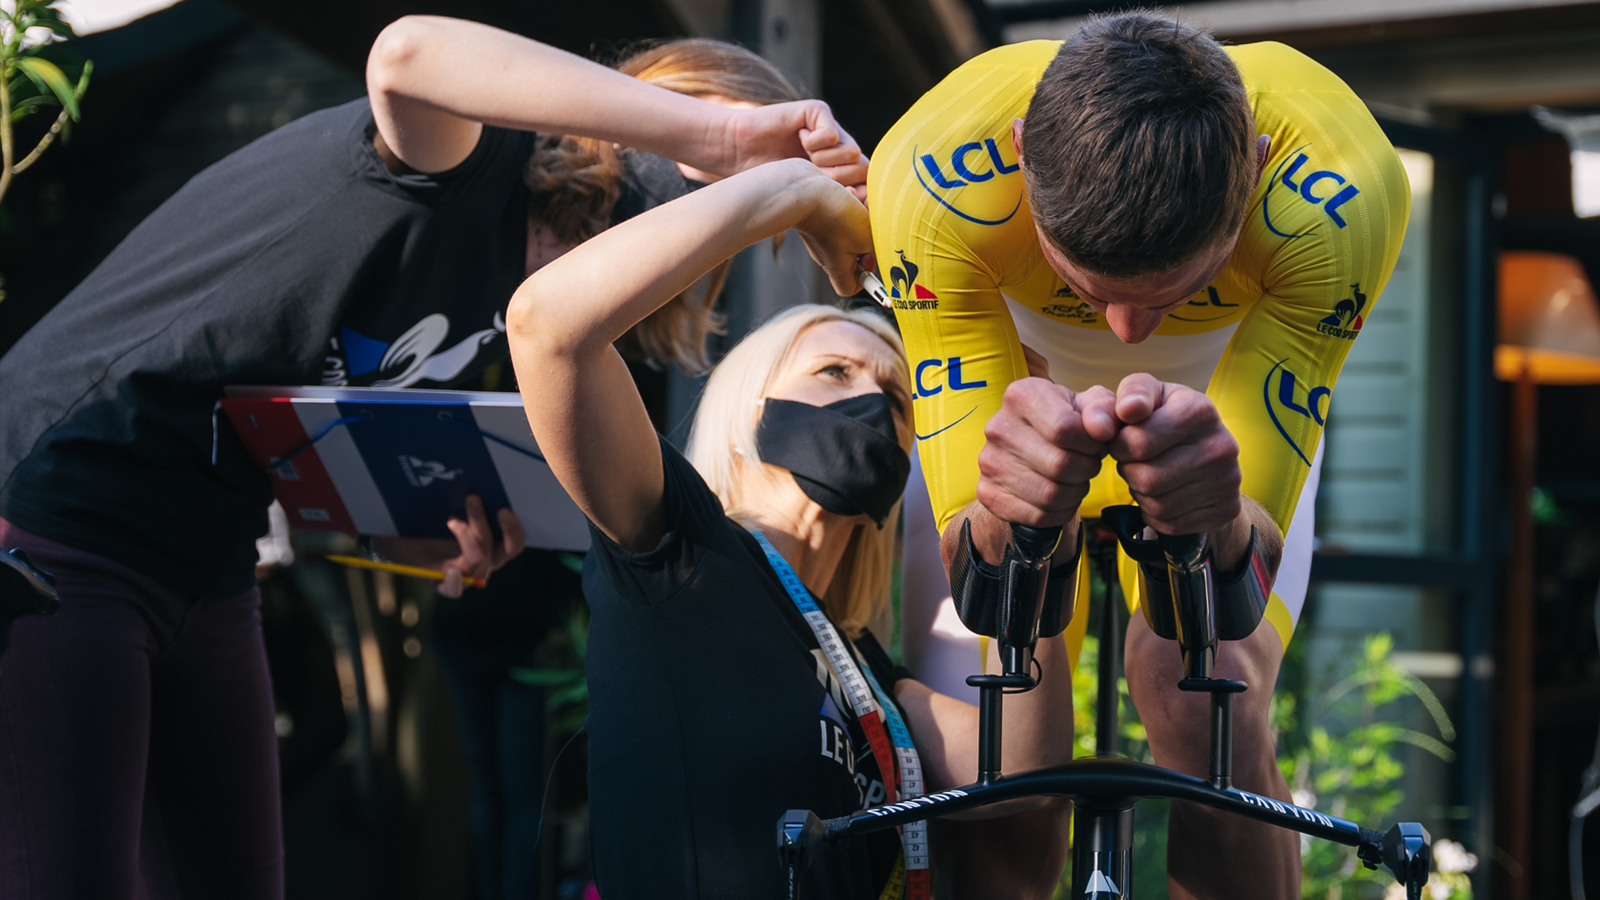 Mathieu Van der Poel gets fitted for a skinsuit ahead of the Tour de France stage 5 time trial